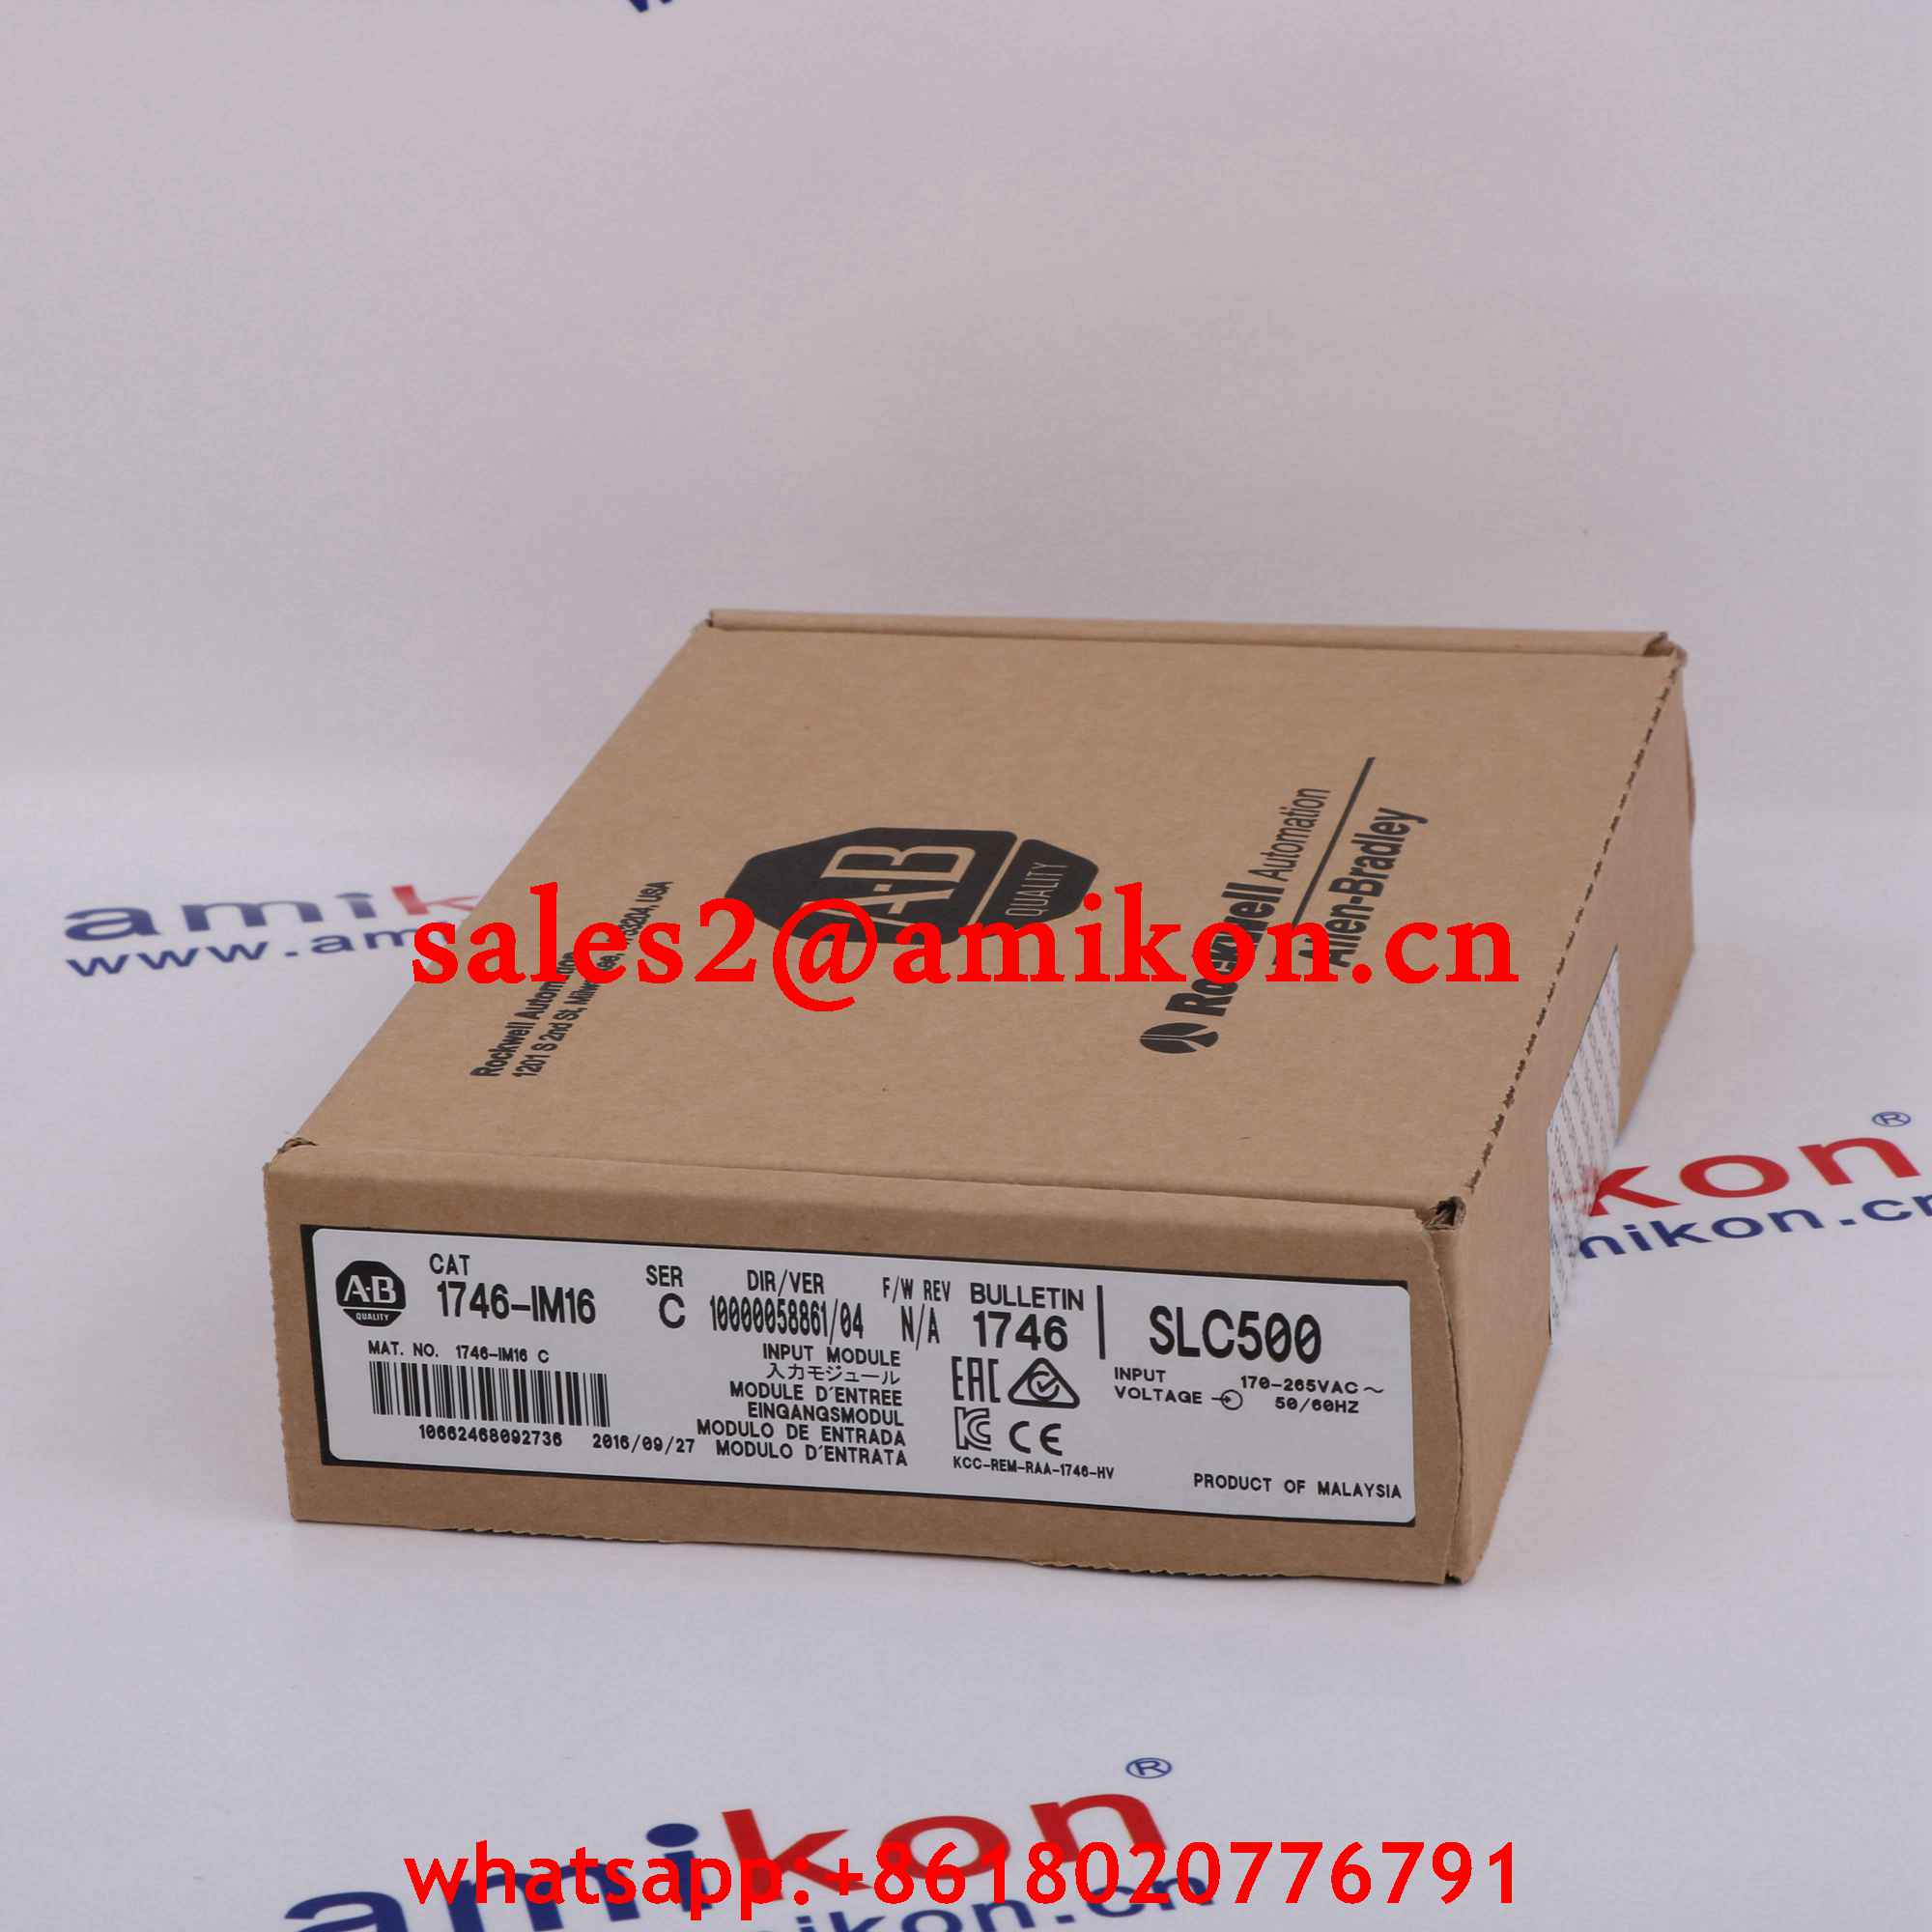 SIEMENS 6DD1600-0AK0 NEW IN STOCK DISOUNT SALE